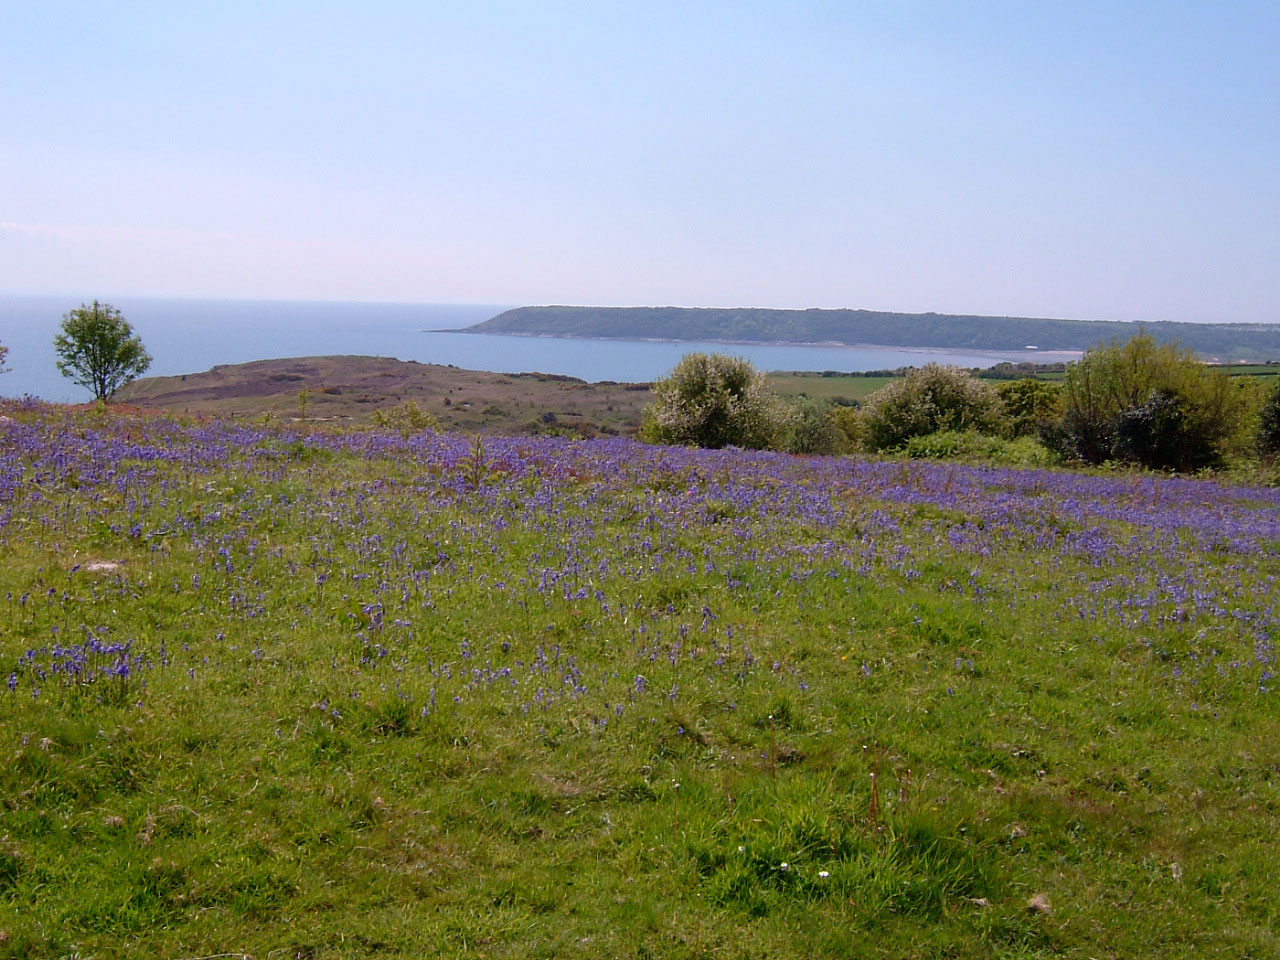 Nott-Hill-bluebells-on-Gower-Commons-project